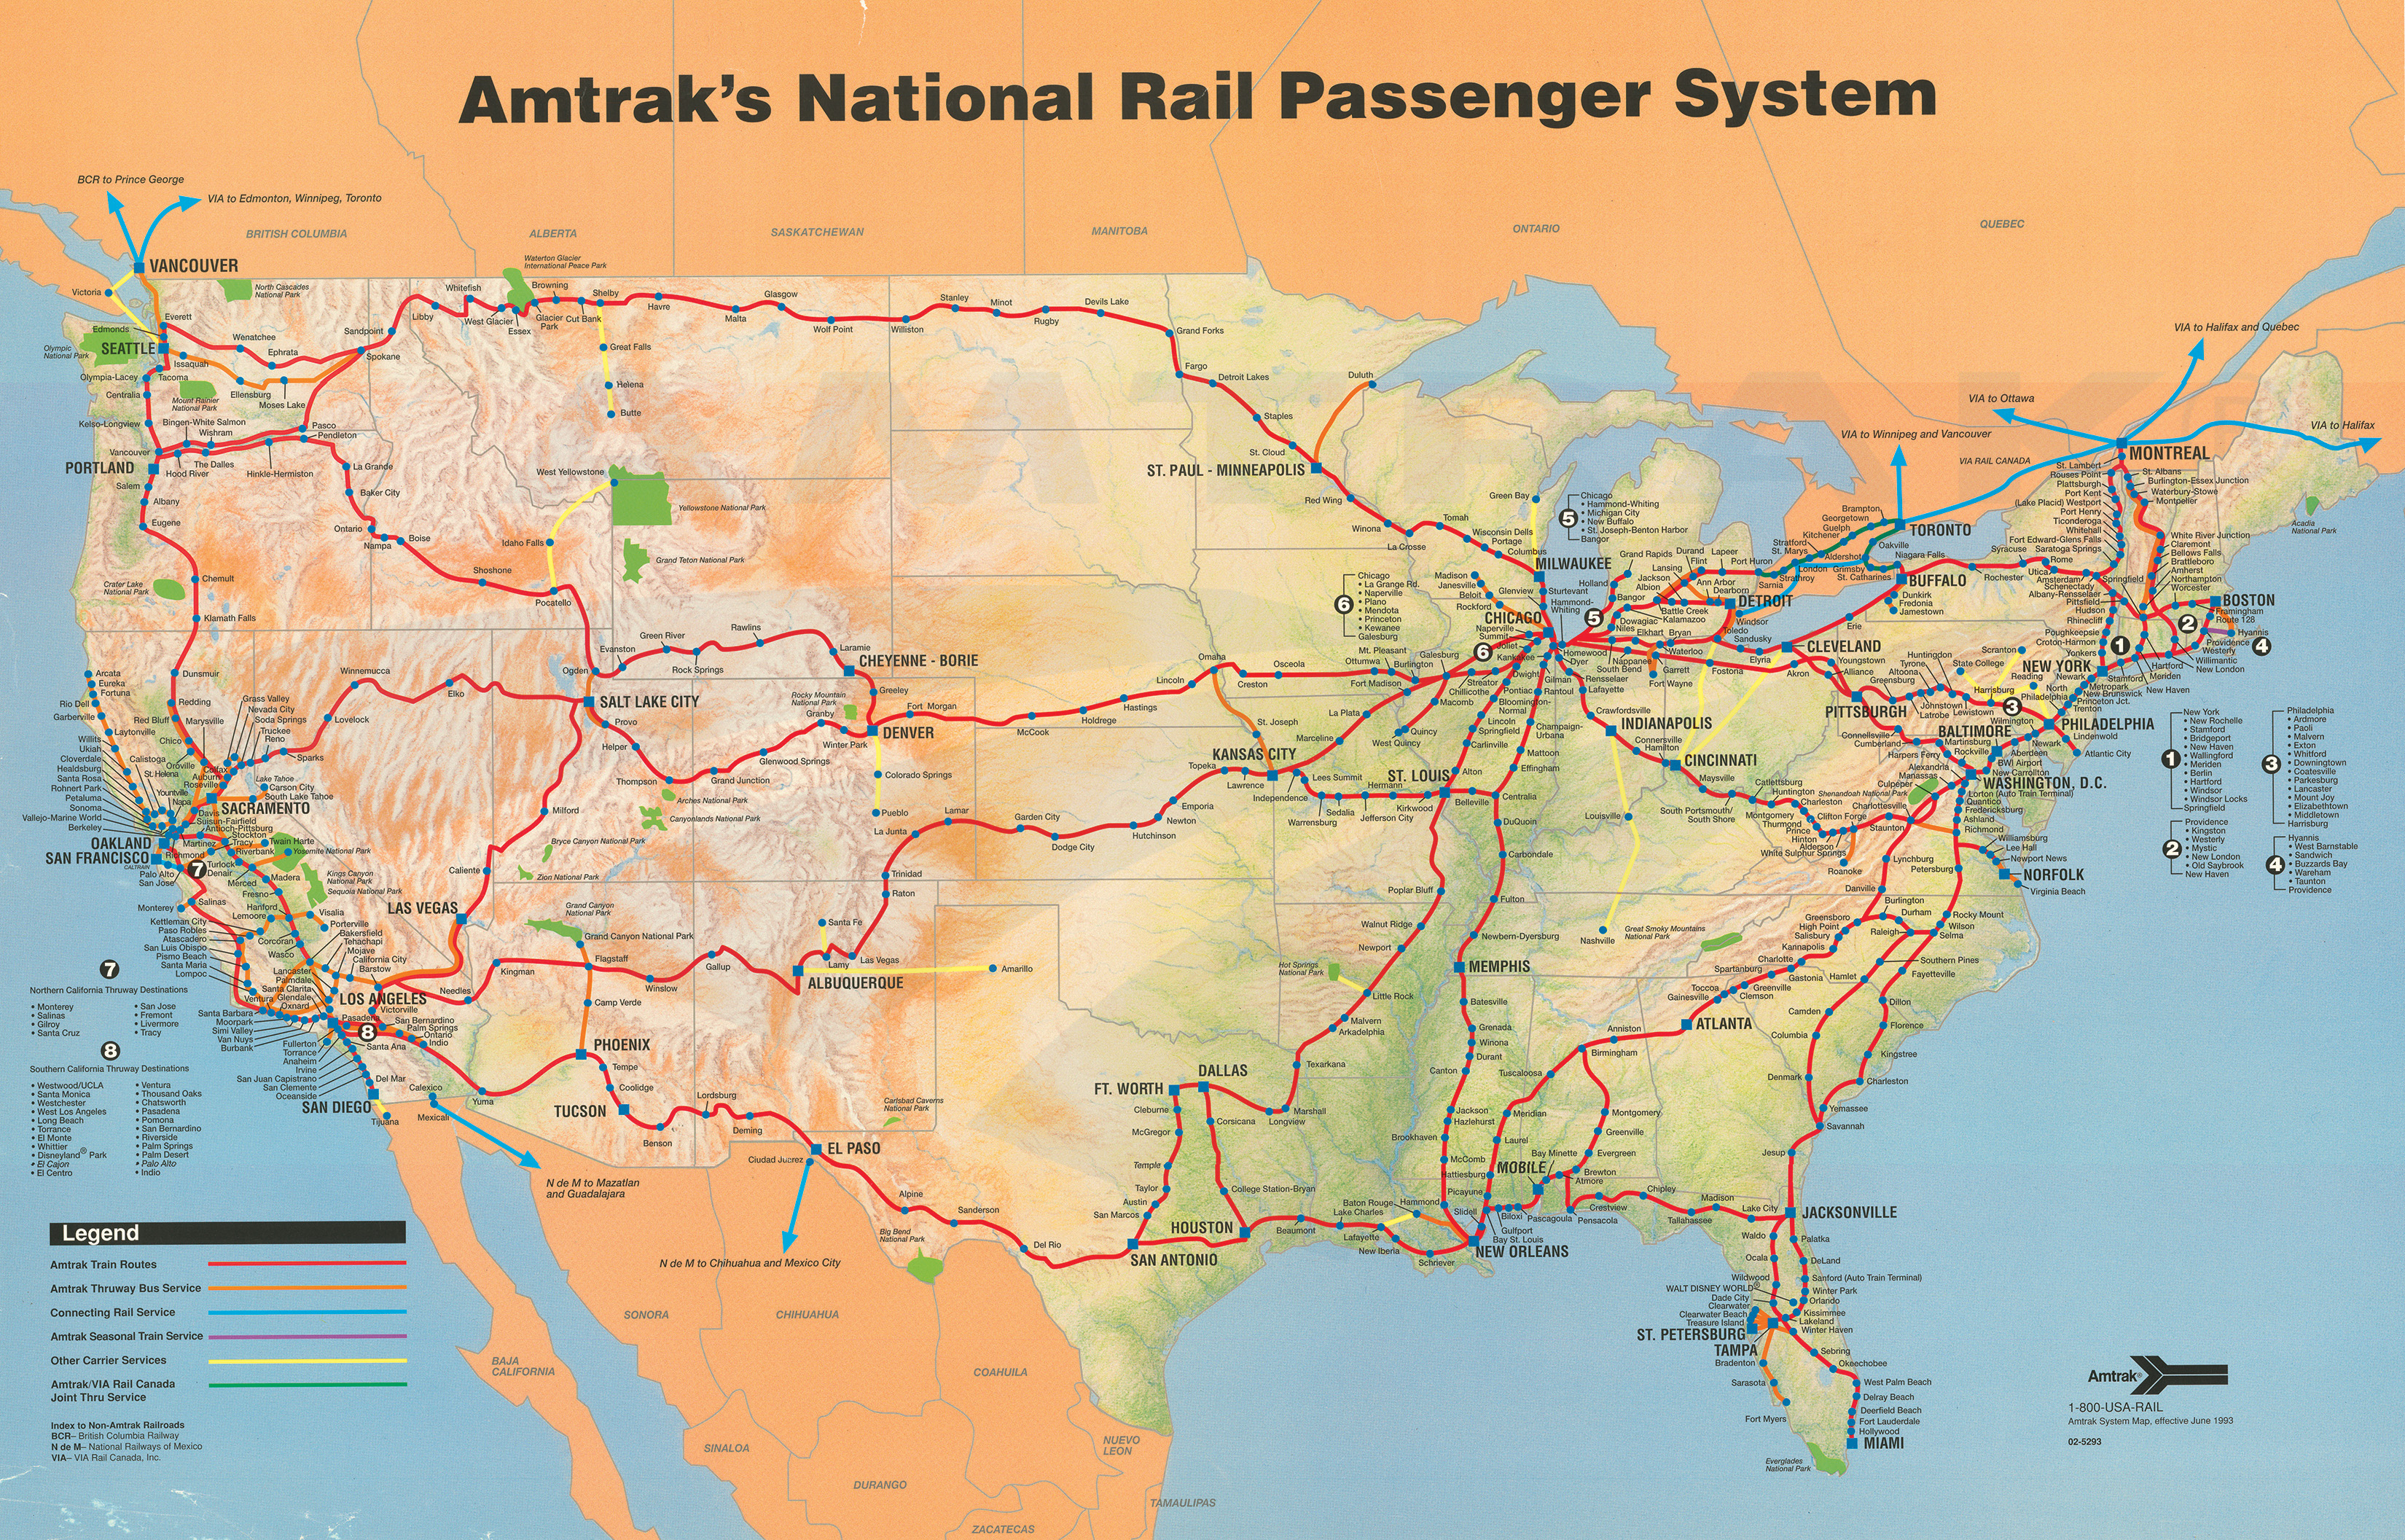 Amtrak System Map, 1993. — Amtrak: History Of America's Railroad - Amtrak Texas Eagle Route Map